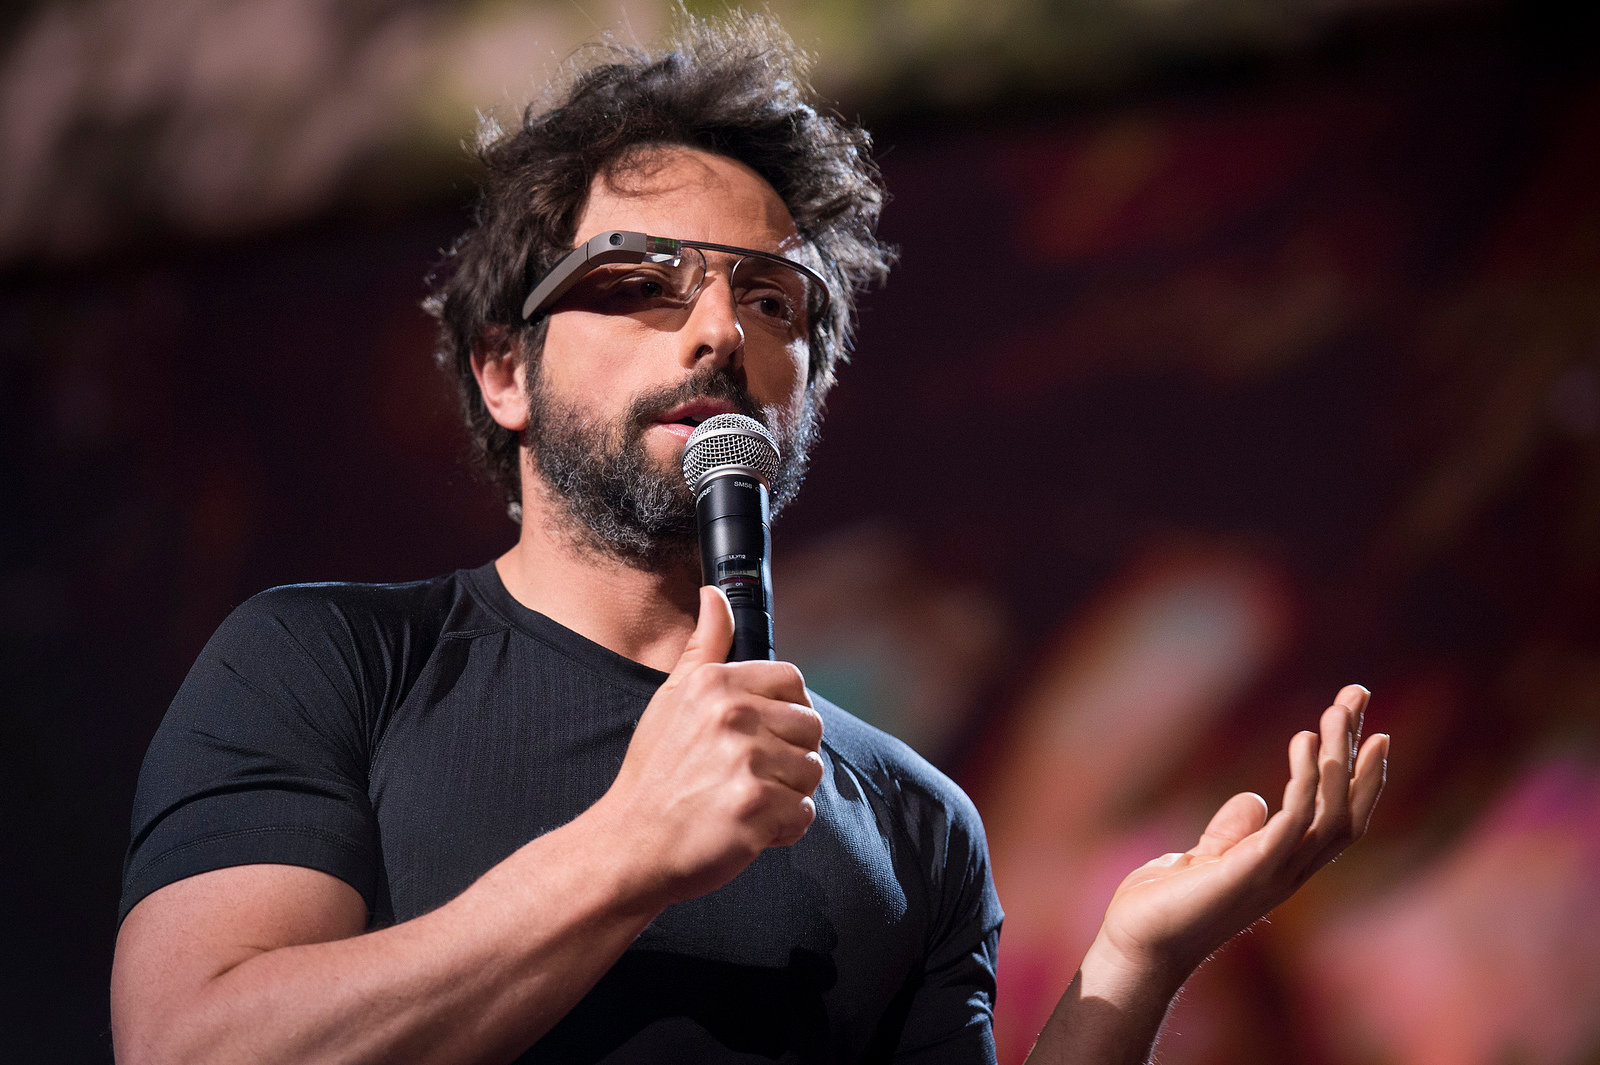 Best 49 Sergey Brin Wallpaper on HipWallpaper Sergey Brin 1600x1065